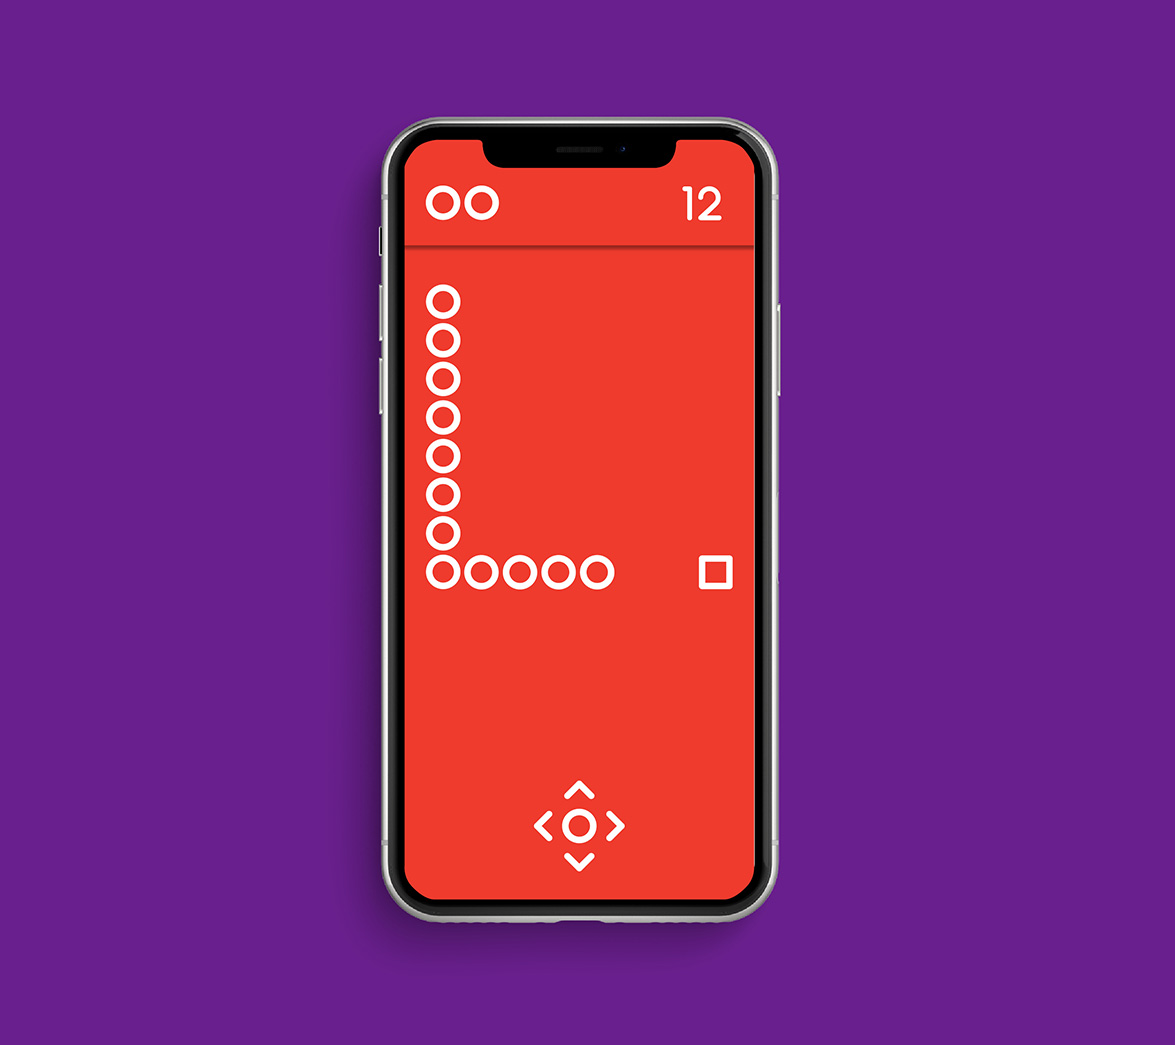 Mobile game design for new startup brand Caboodle, designed by White Bear Studio